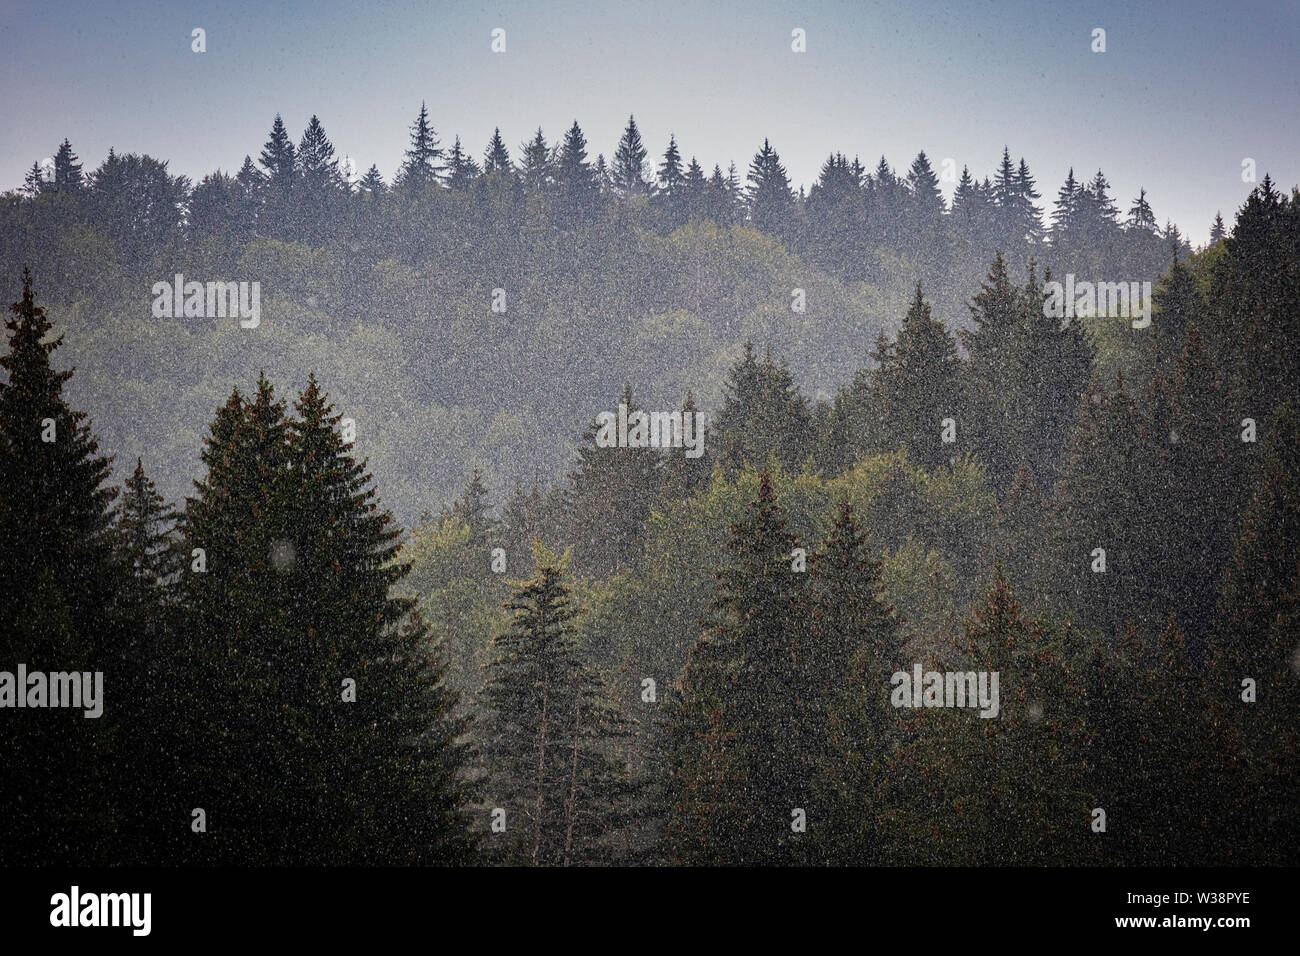 A strong hailstorm over a coniferous forest in eastern europe - Stock Image